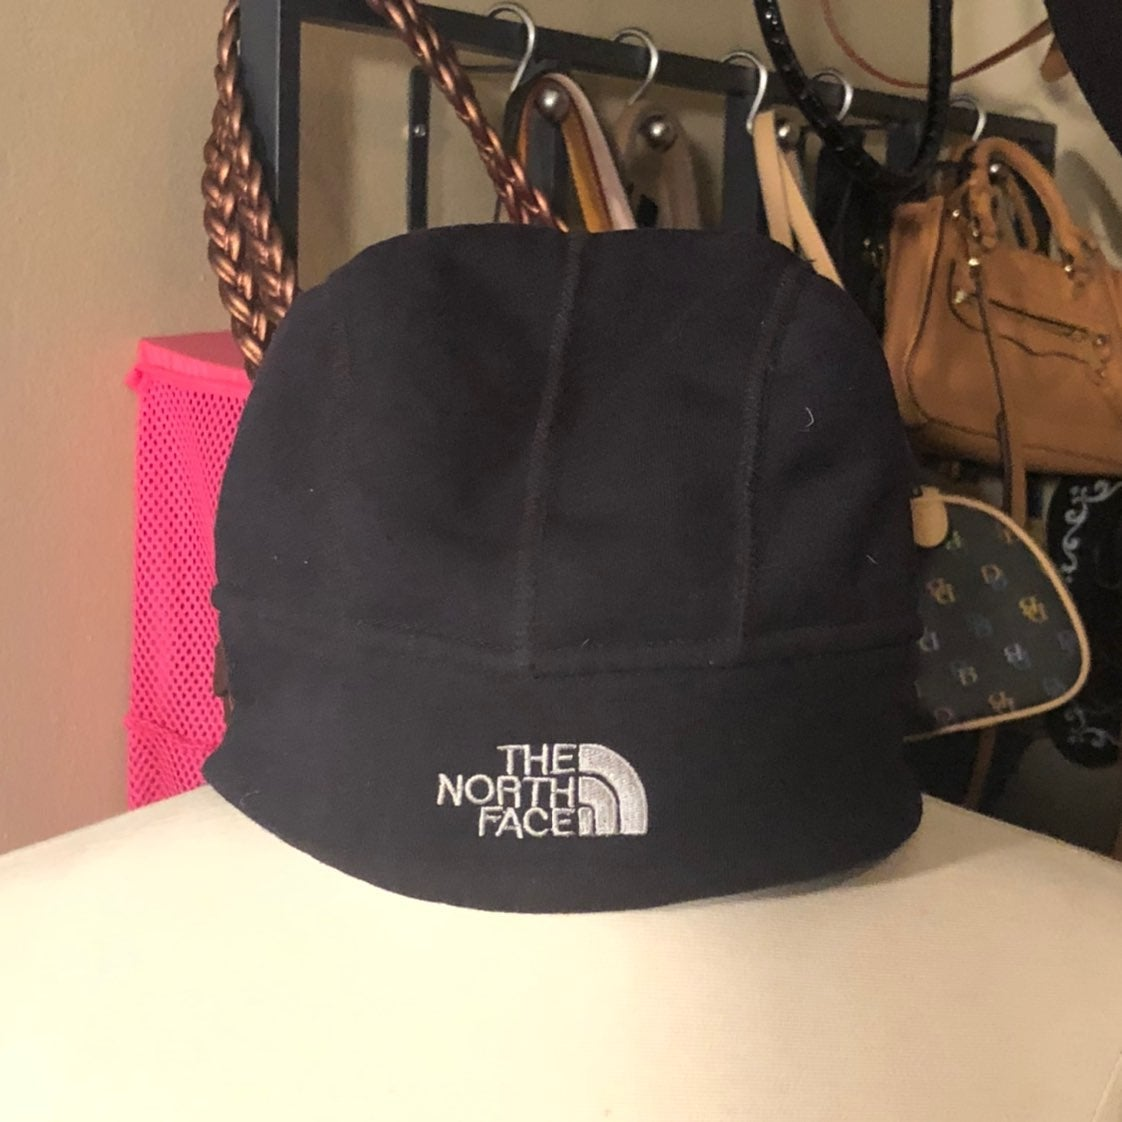 The North Face Polartec Beanie Hat